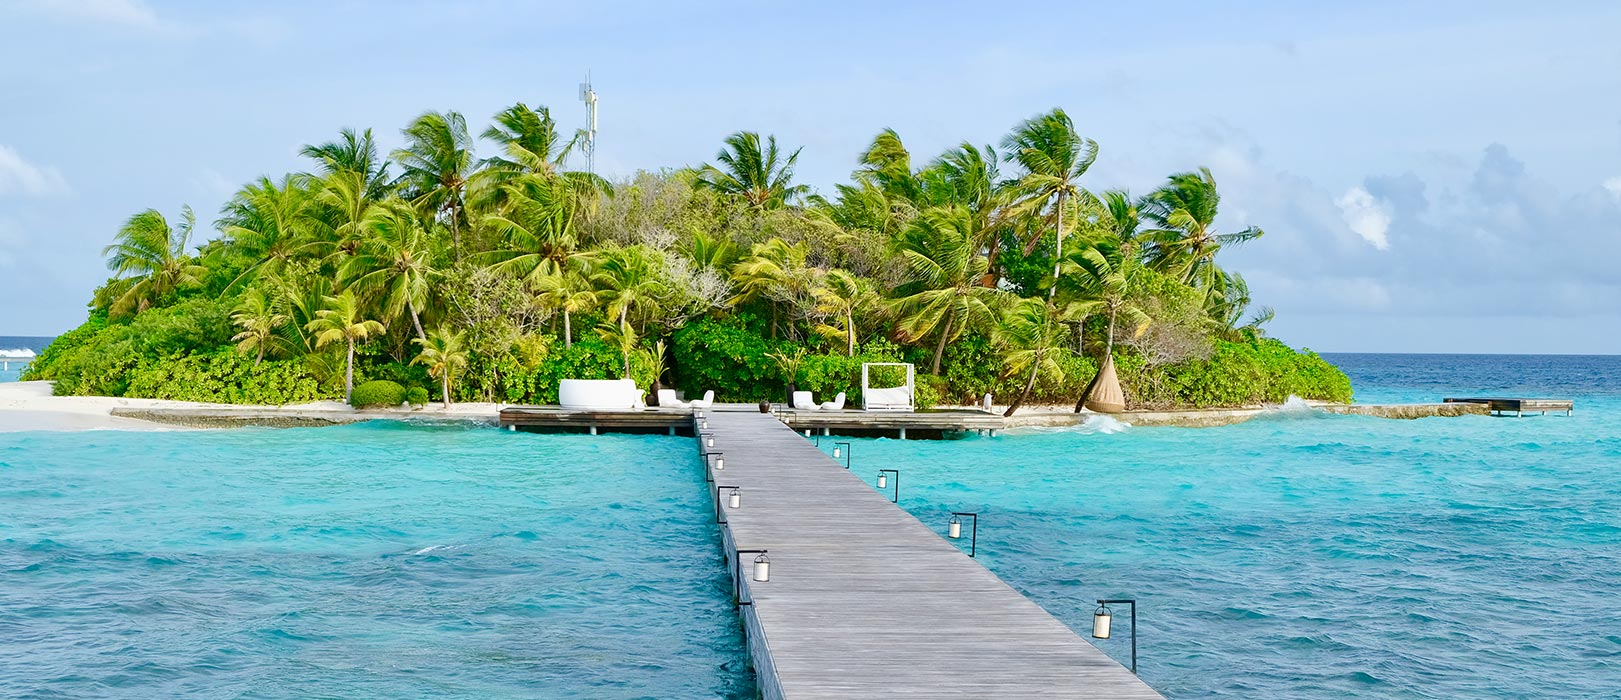 The Maldives: San Diego Metro Magazine